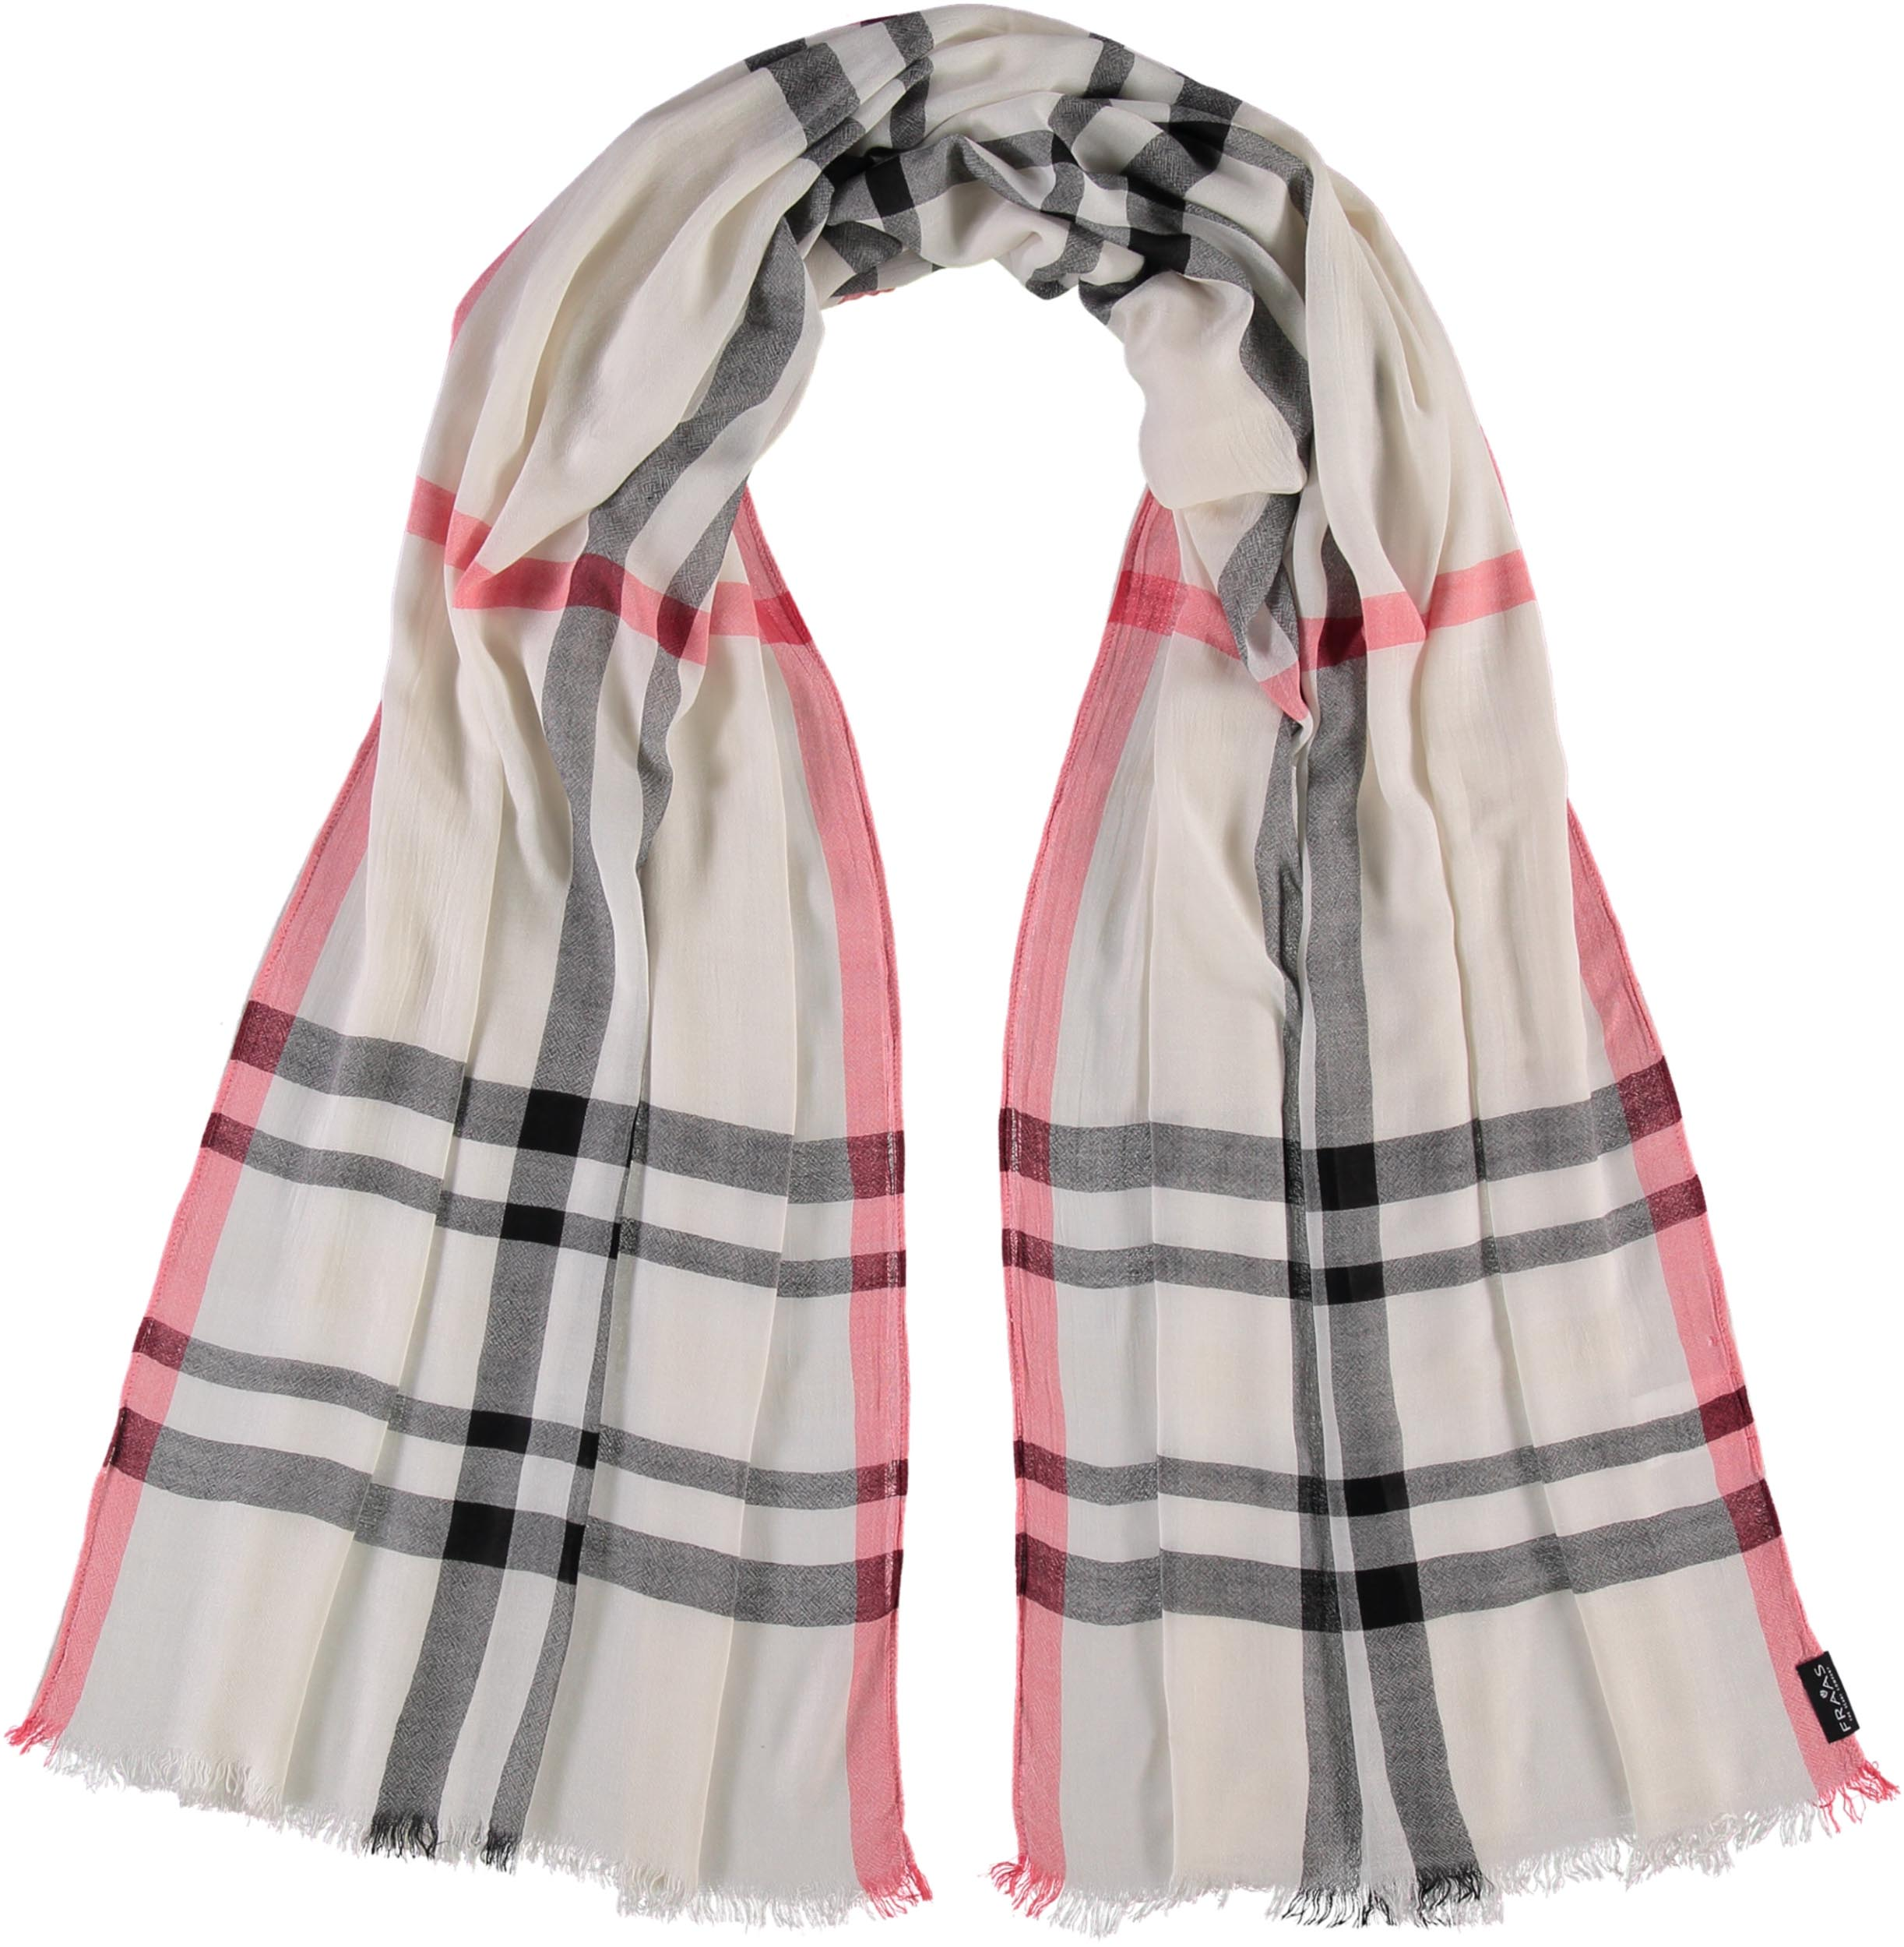 Fraas Plaid Lightweight Viscose Woven Scarf Wrap